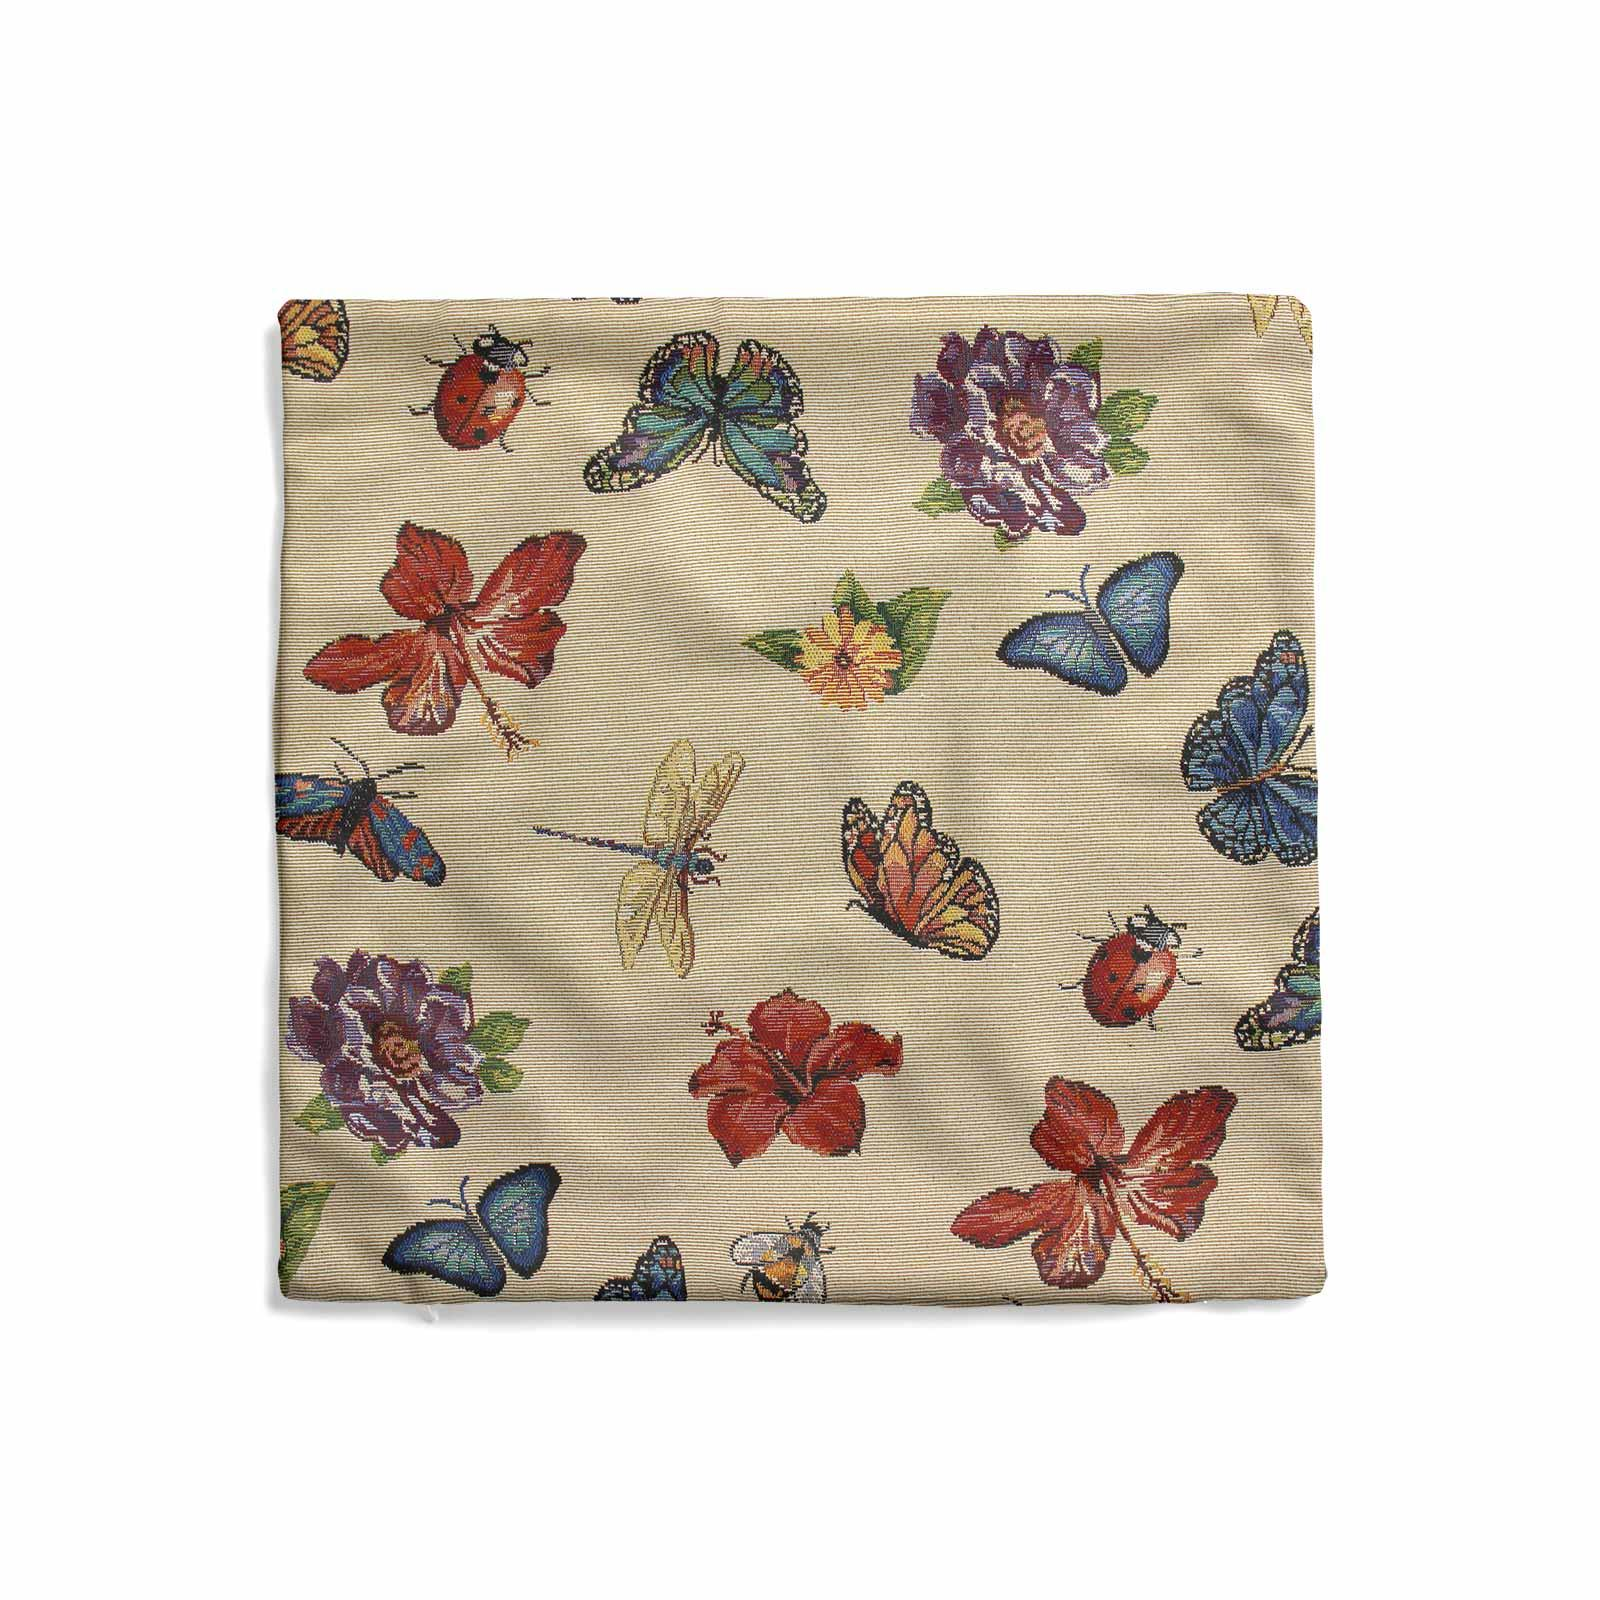 Tapestry-Cushion-Covers-Vintage-Pillow-Cover-Collection-18-034-45cm-Filled-Cushions thumbnail 108